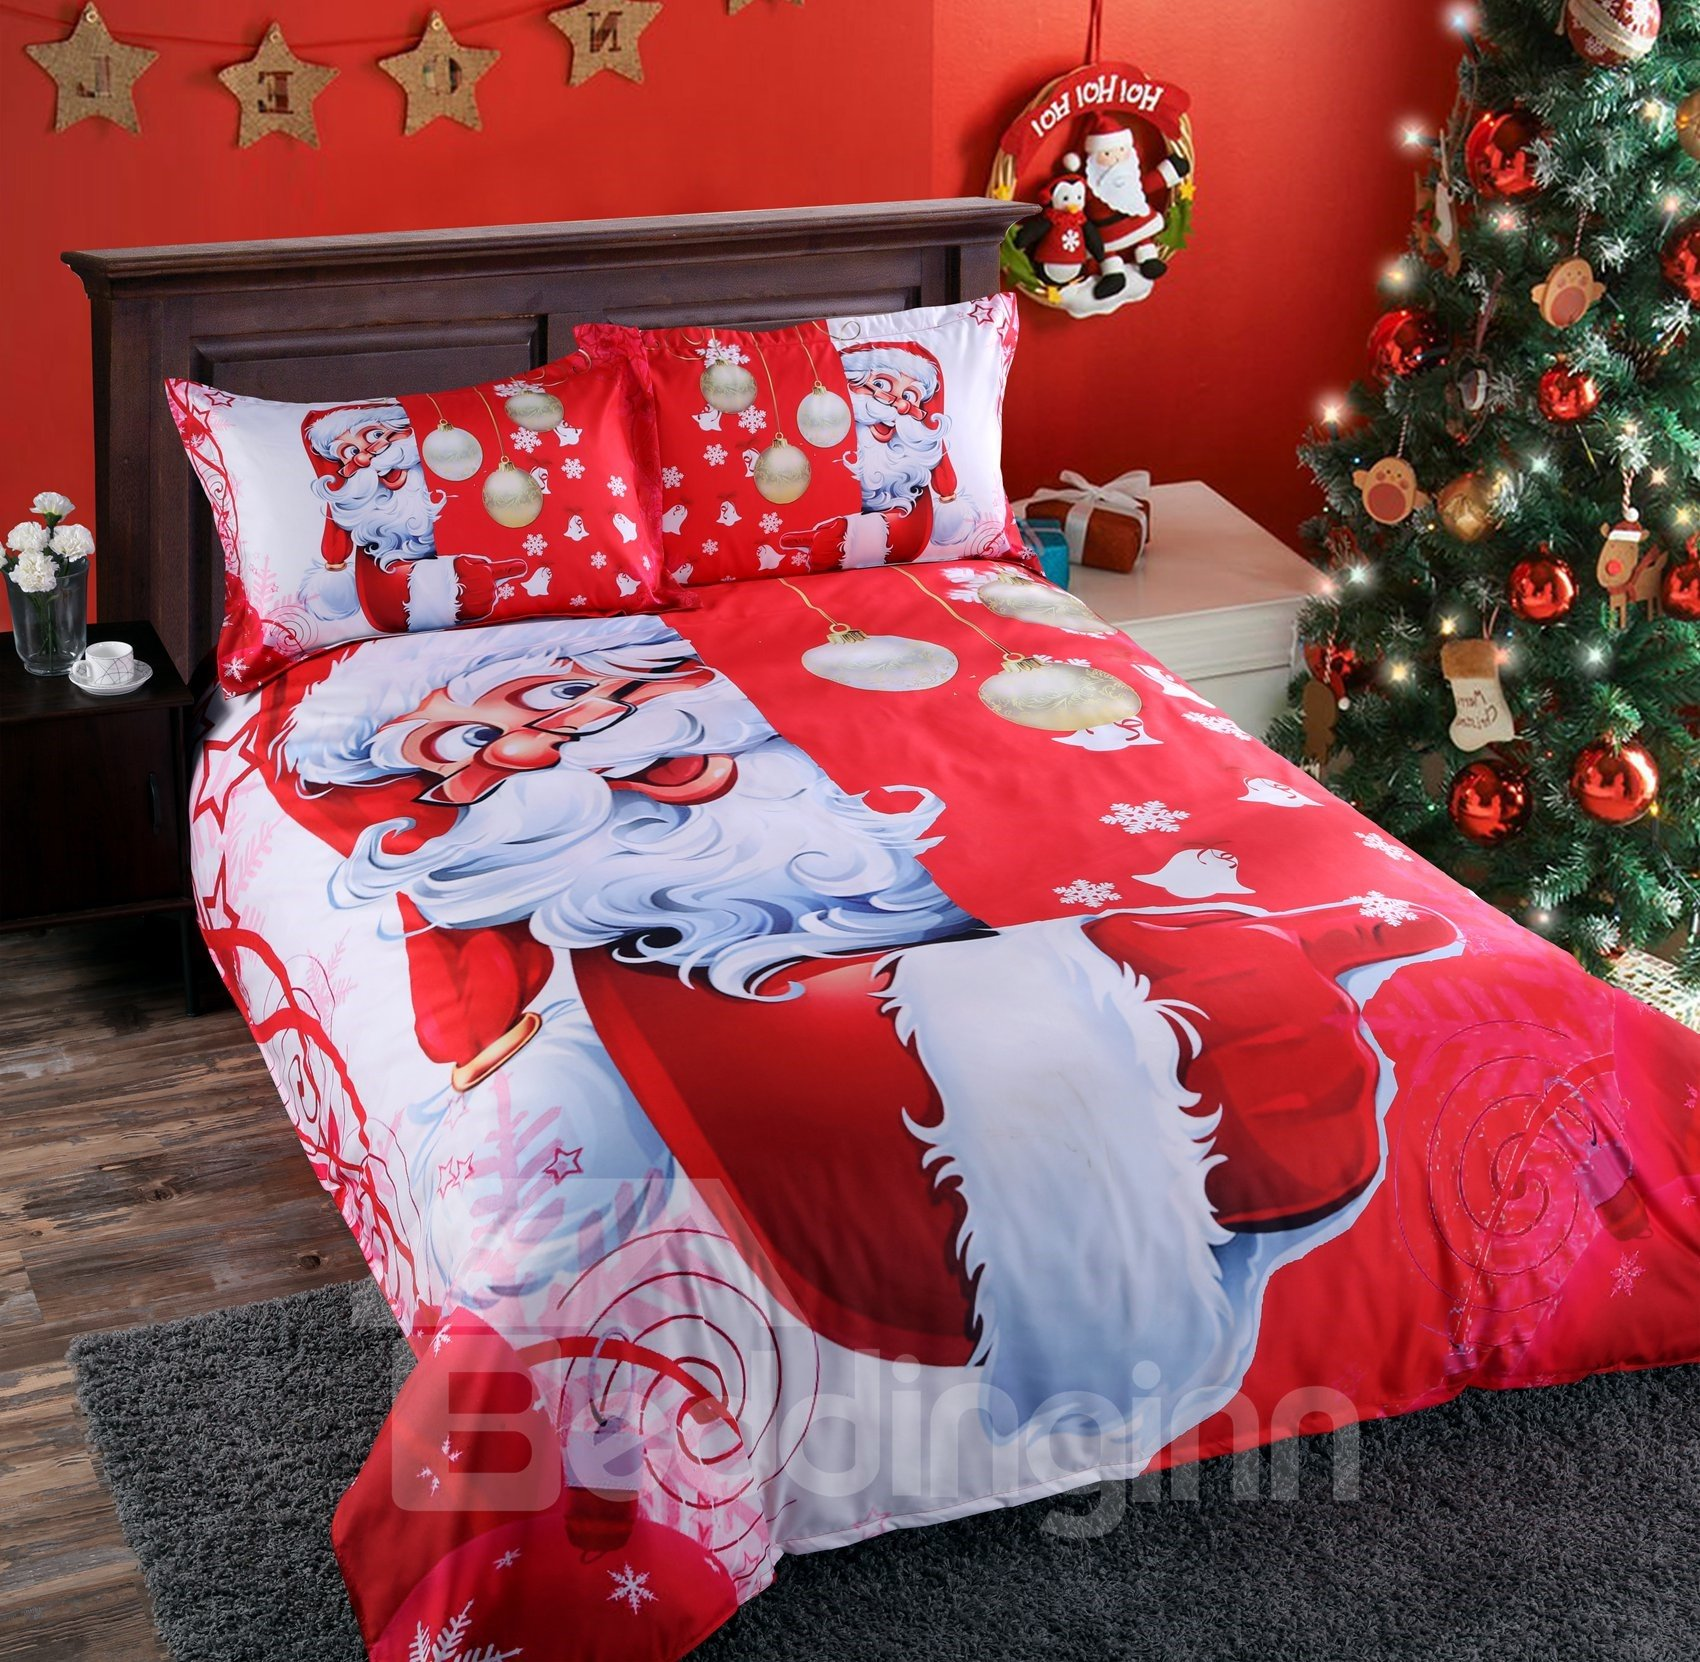 Onlwe 3D Santa and Christmas Decorations Printed 4-Piece Red Bedding Sets/Duvet Covers